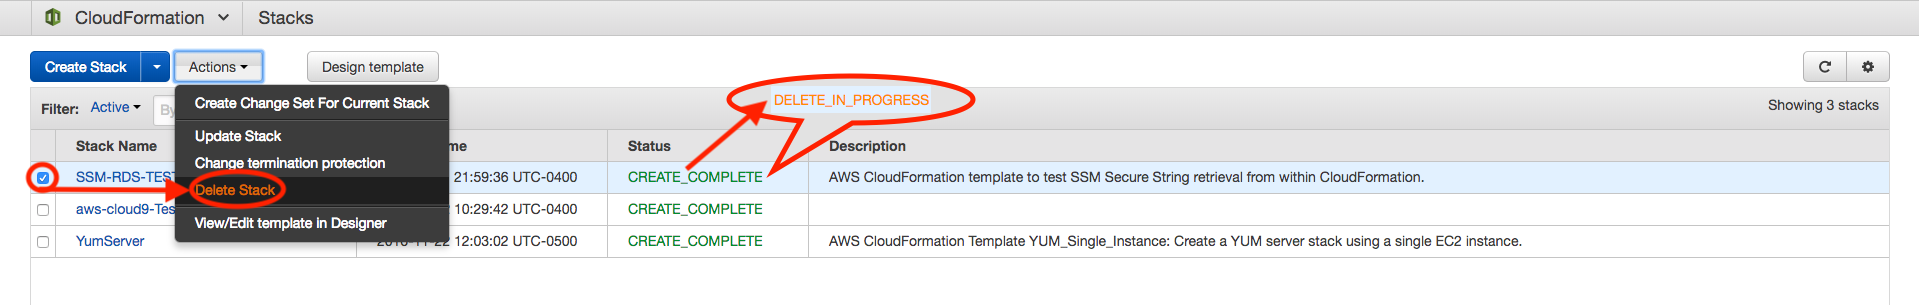 Accessing SSM Params in CloudFormation - beta awsdocs com